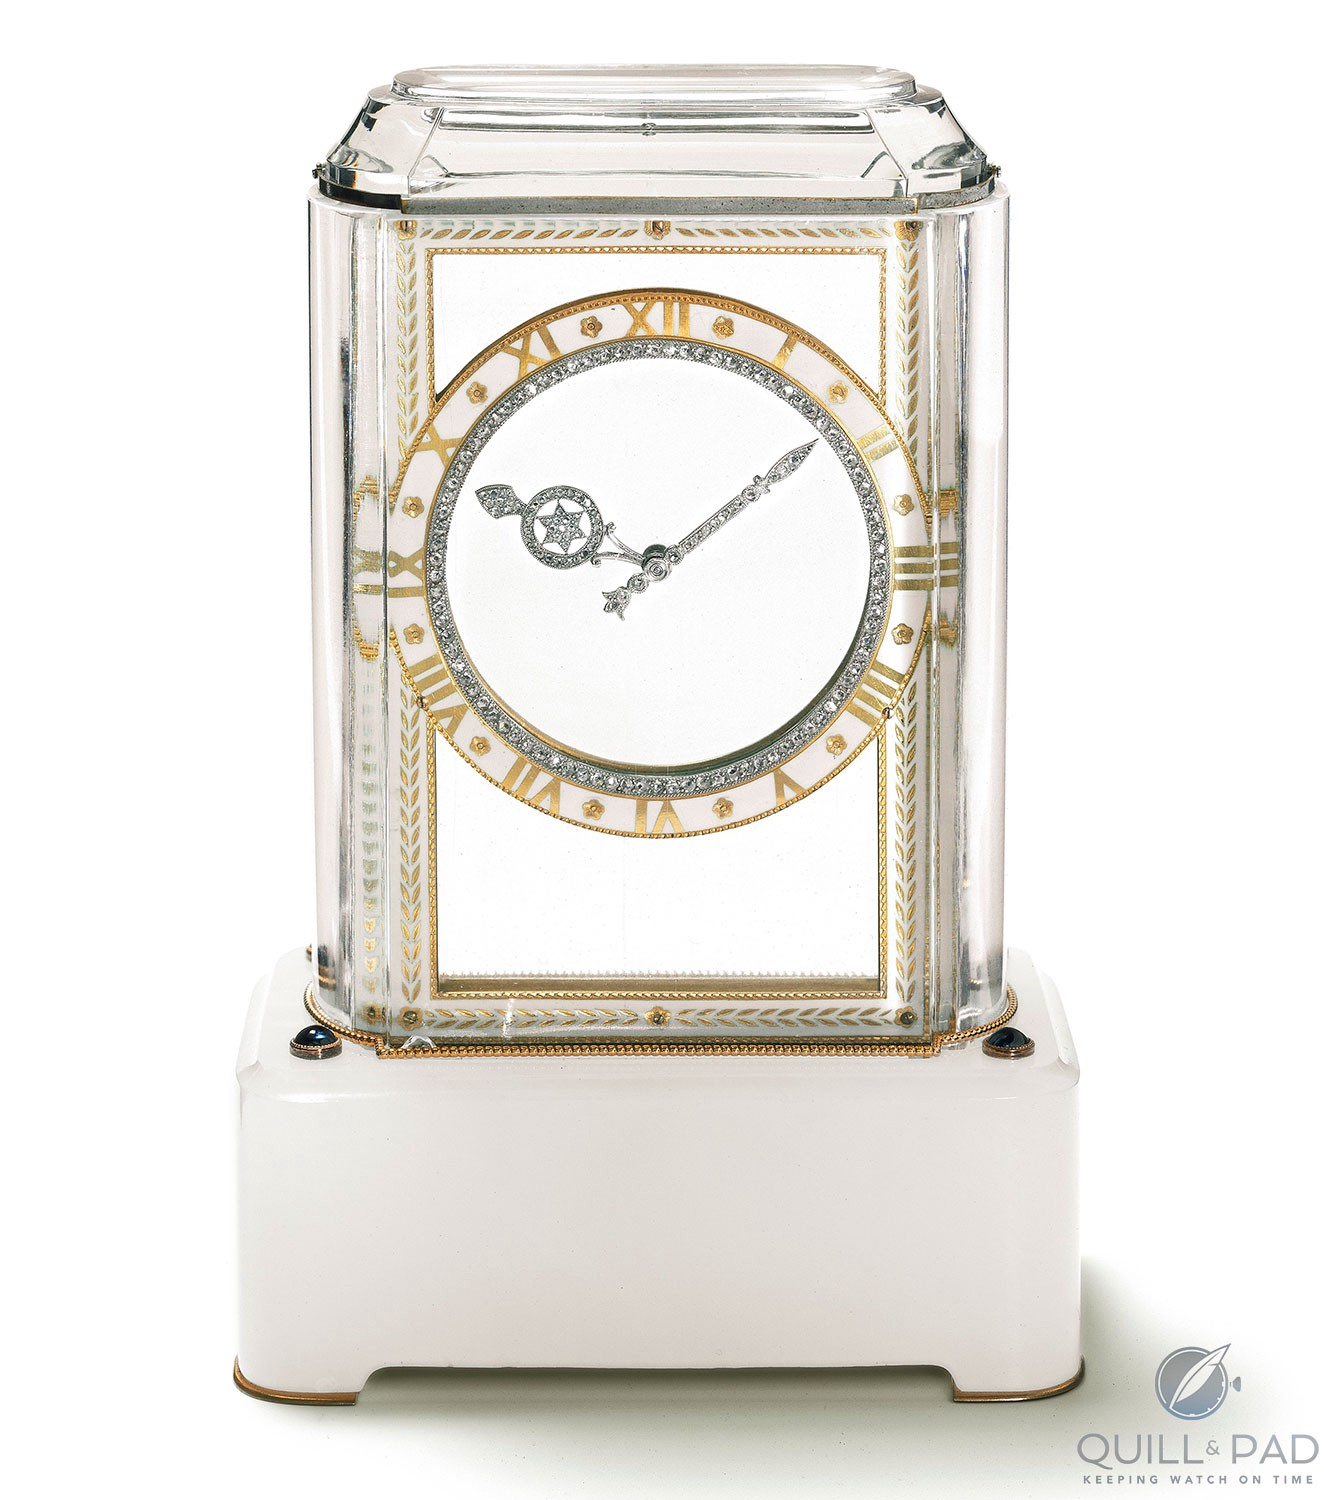 Model A Cartier Mystery Clock from 1912 featuring platinum, gold, white agate, rock crystal, sapphires, rose-cut diamonds, enamel